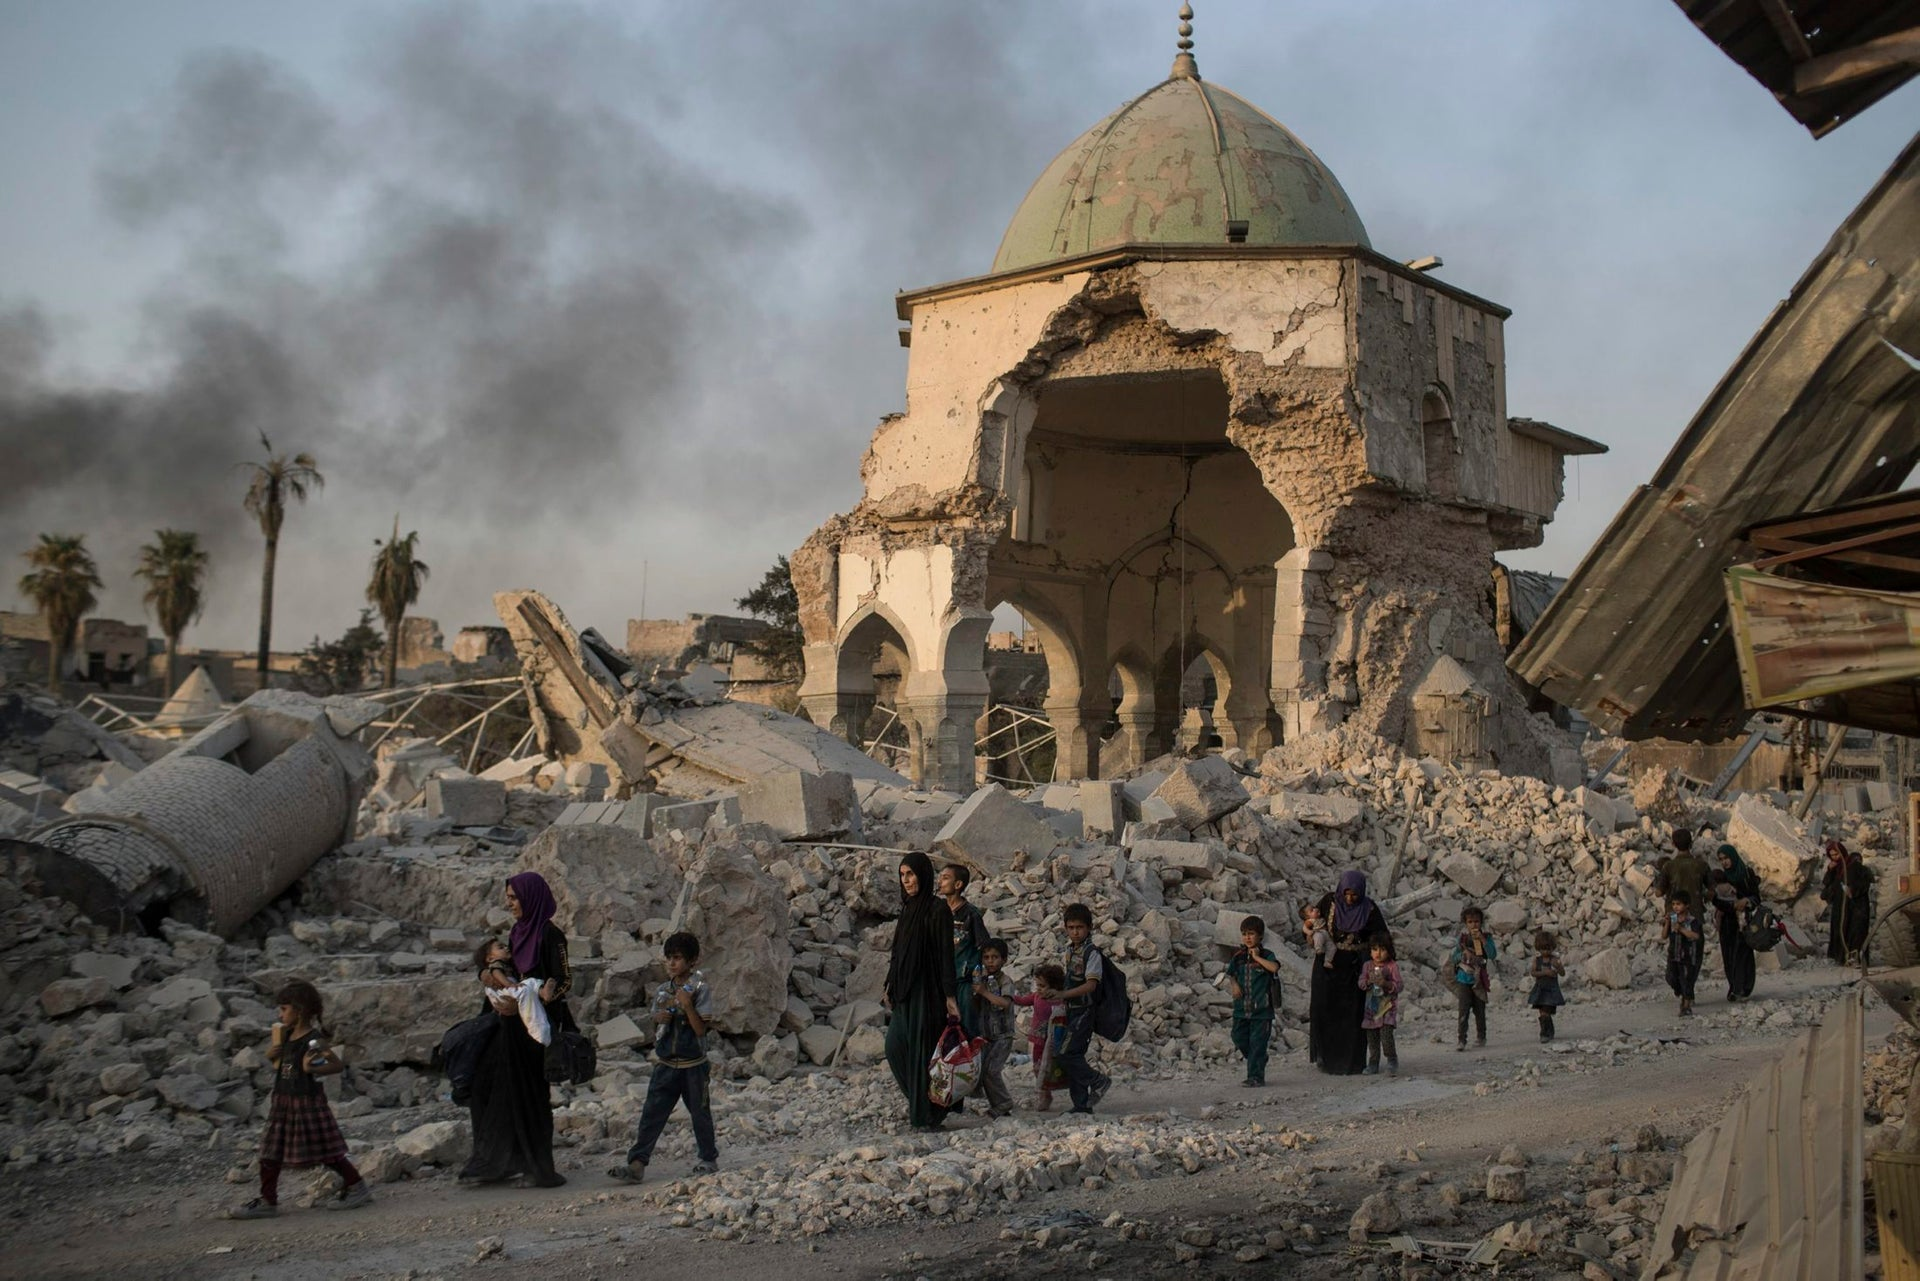 Iraqi civilians fleeing walk past the destroyed al-Nuri mosque as Iraqi forces continue their advance against Islamic State militants in the Old City of Mosul, Iraq, Tuesday, July 4, 2017.